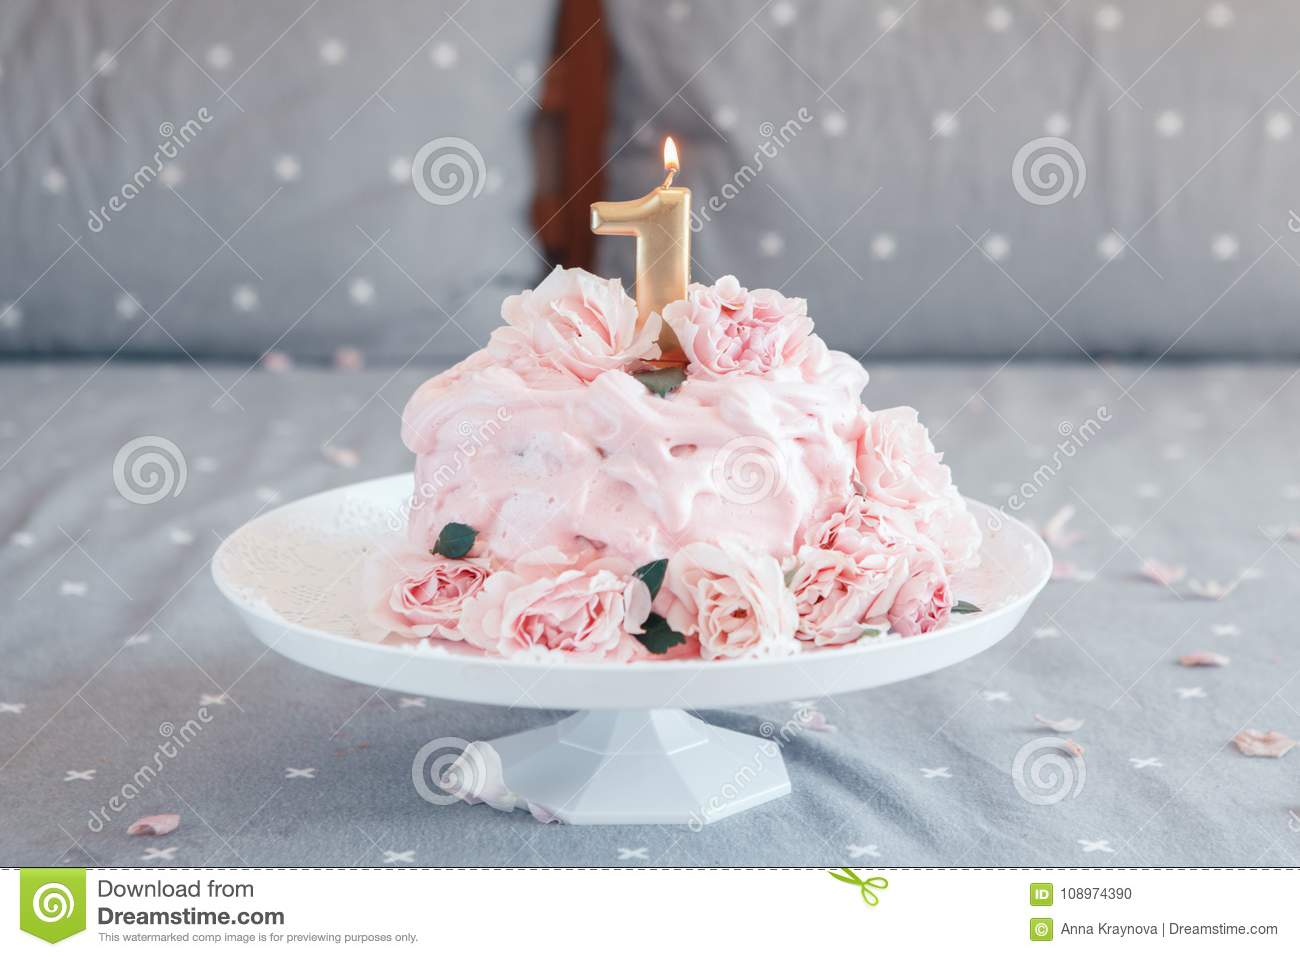 Pink cake with large natural real rose flowers and candle on stand gourmet pink cake with large natural real rose flowers and candle on stand in bedroom for baby birthday home indoors cake smash first year concept izmirmasajfo